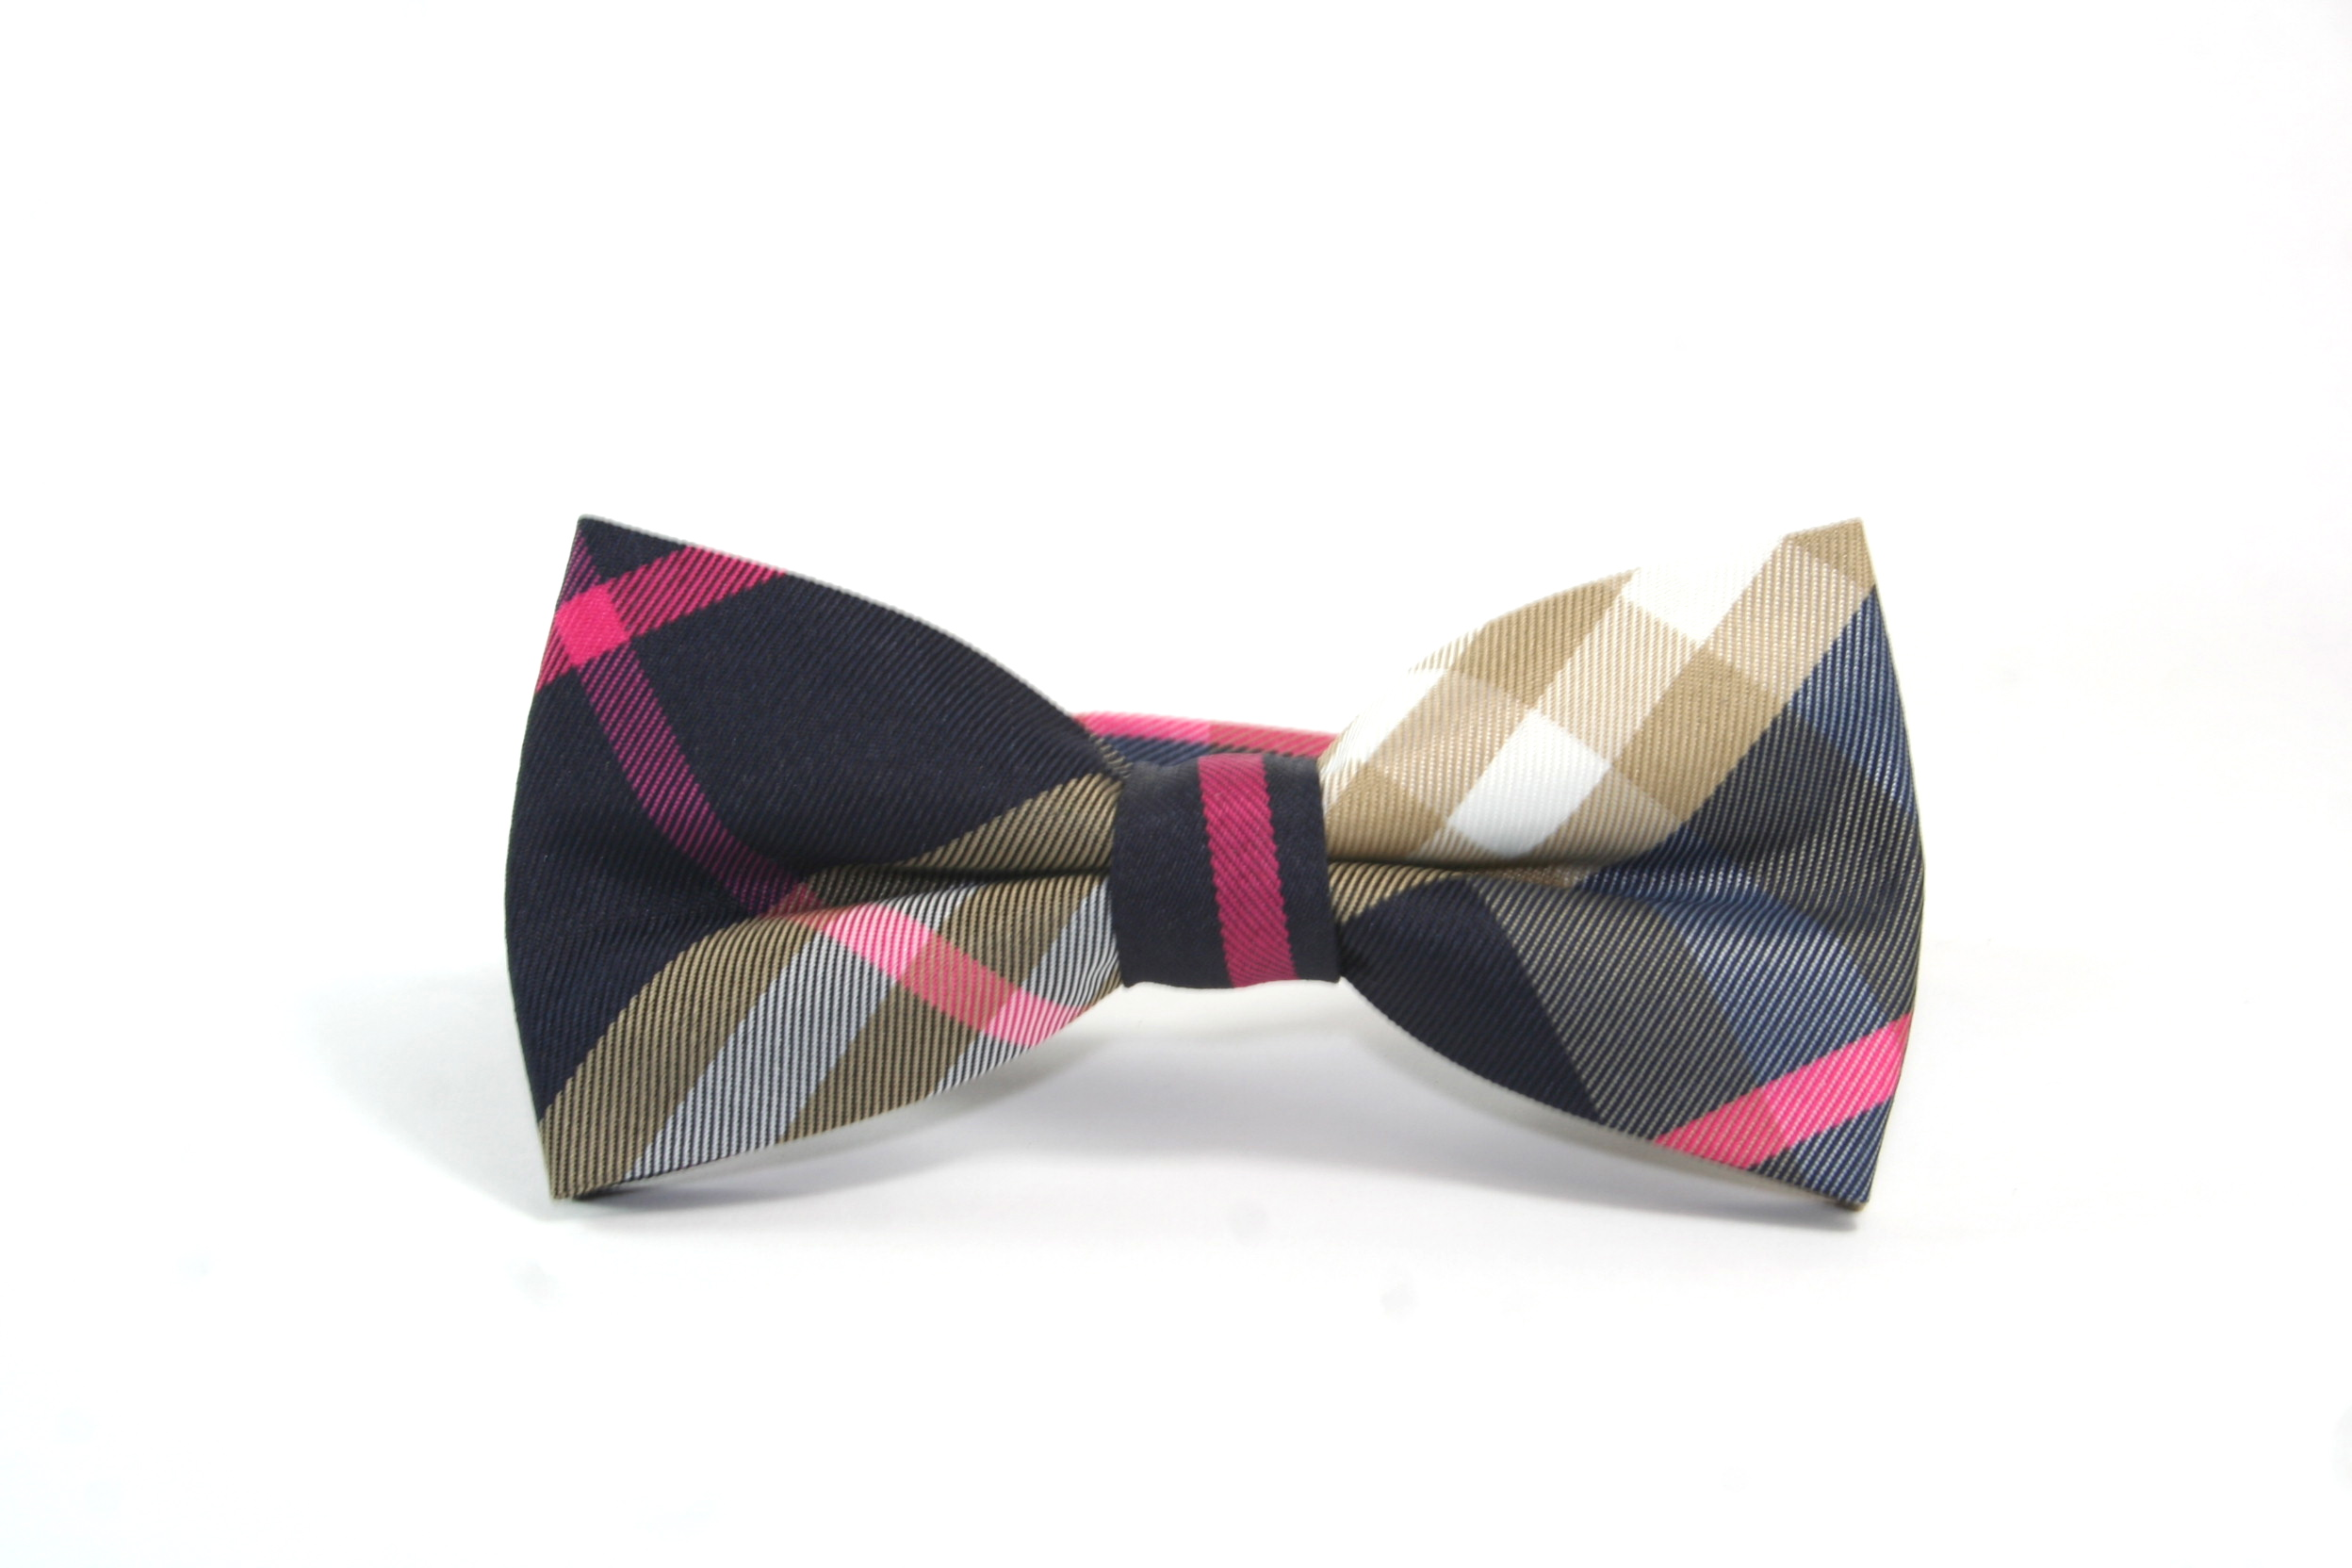 beau ties case Bow ties handmade in the usa | hundreds of styles | beau ties ltd of vermont.